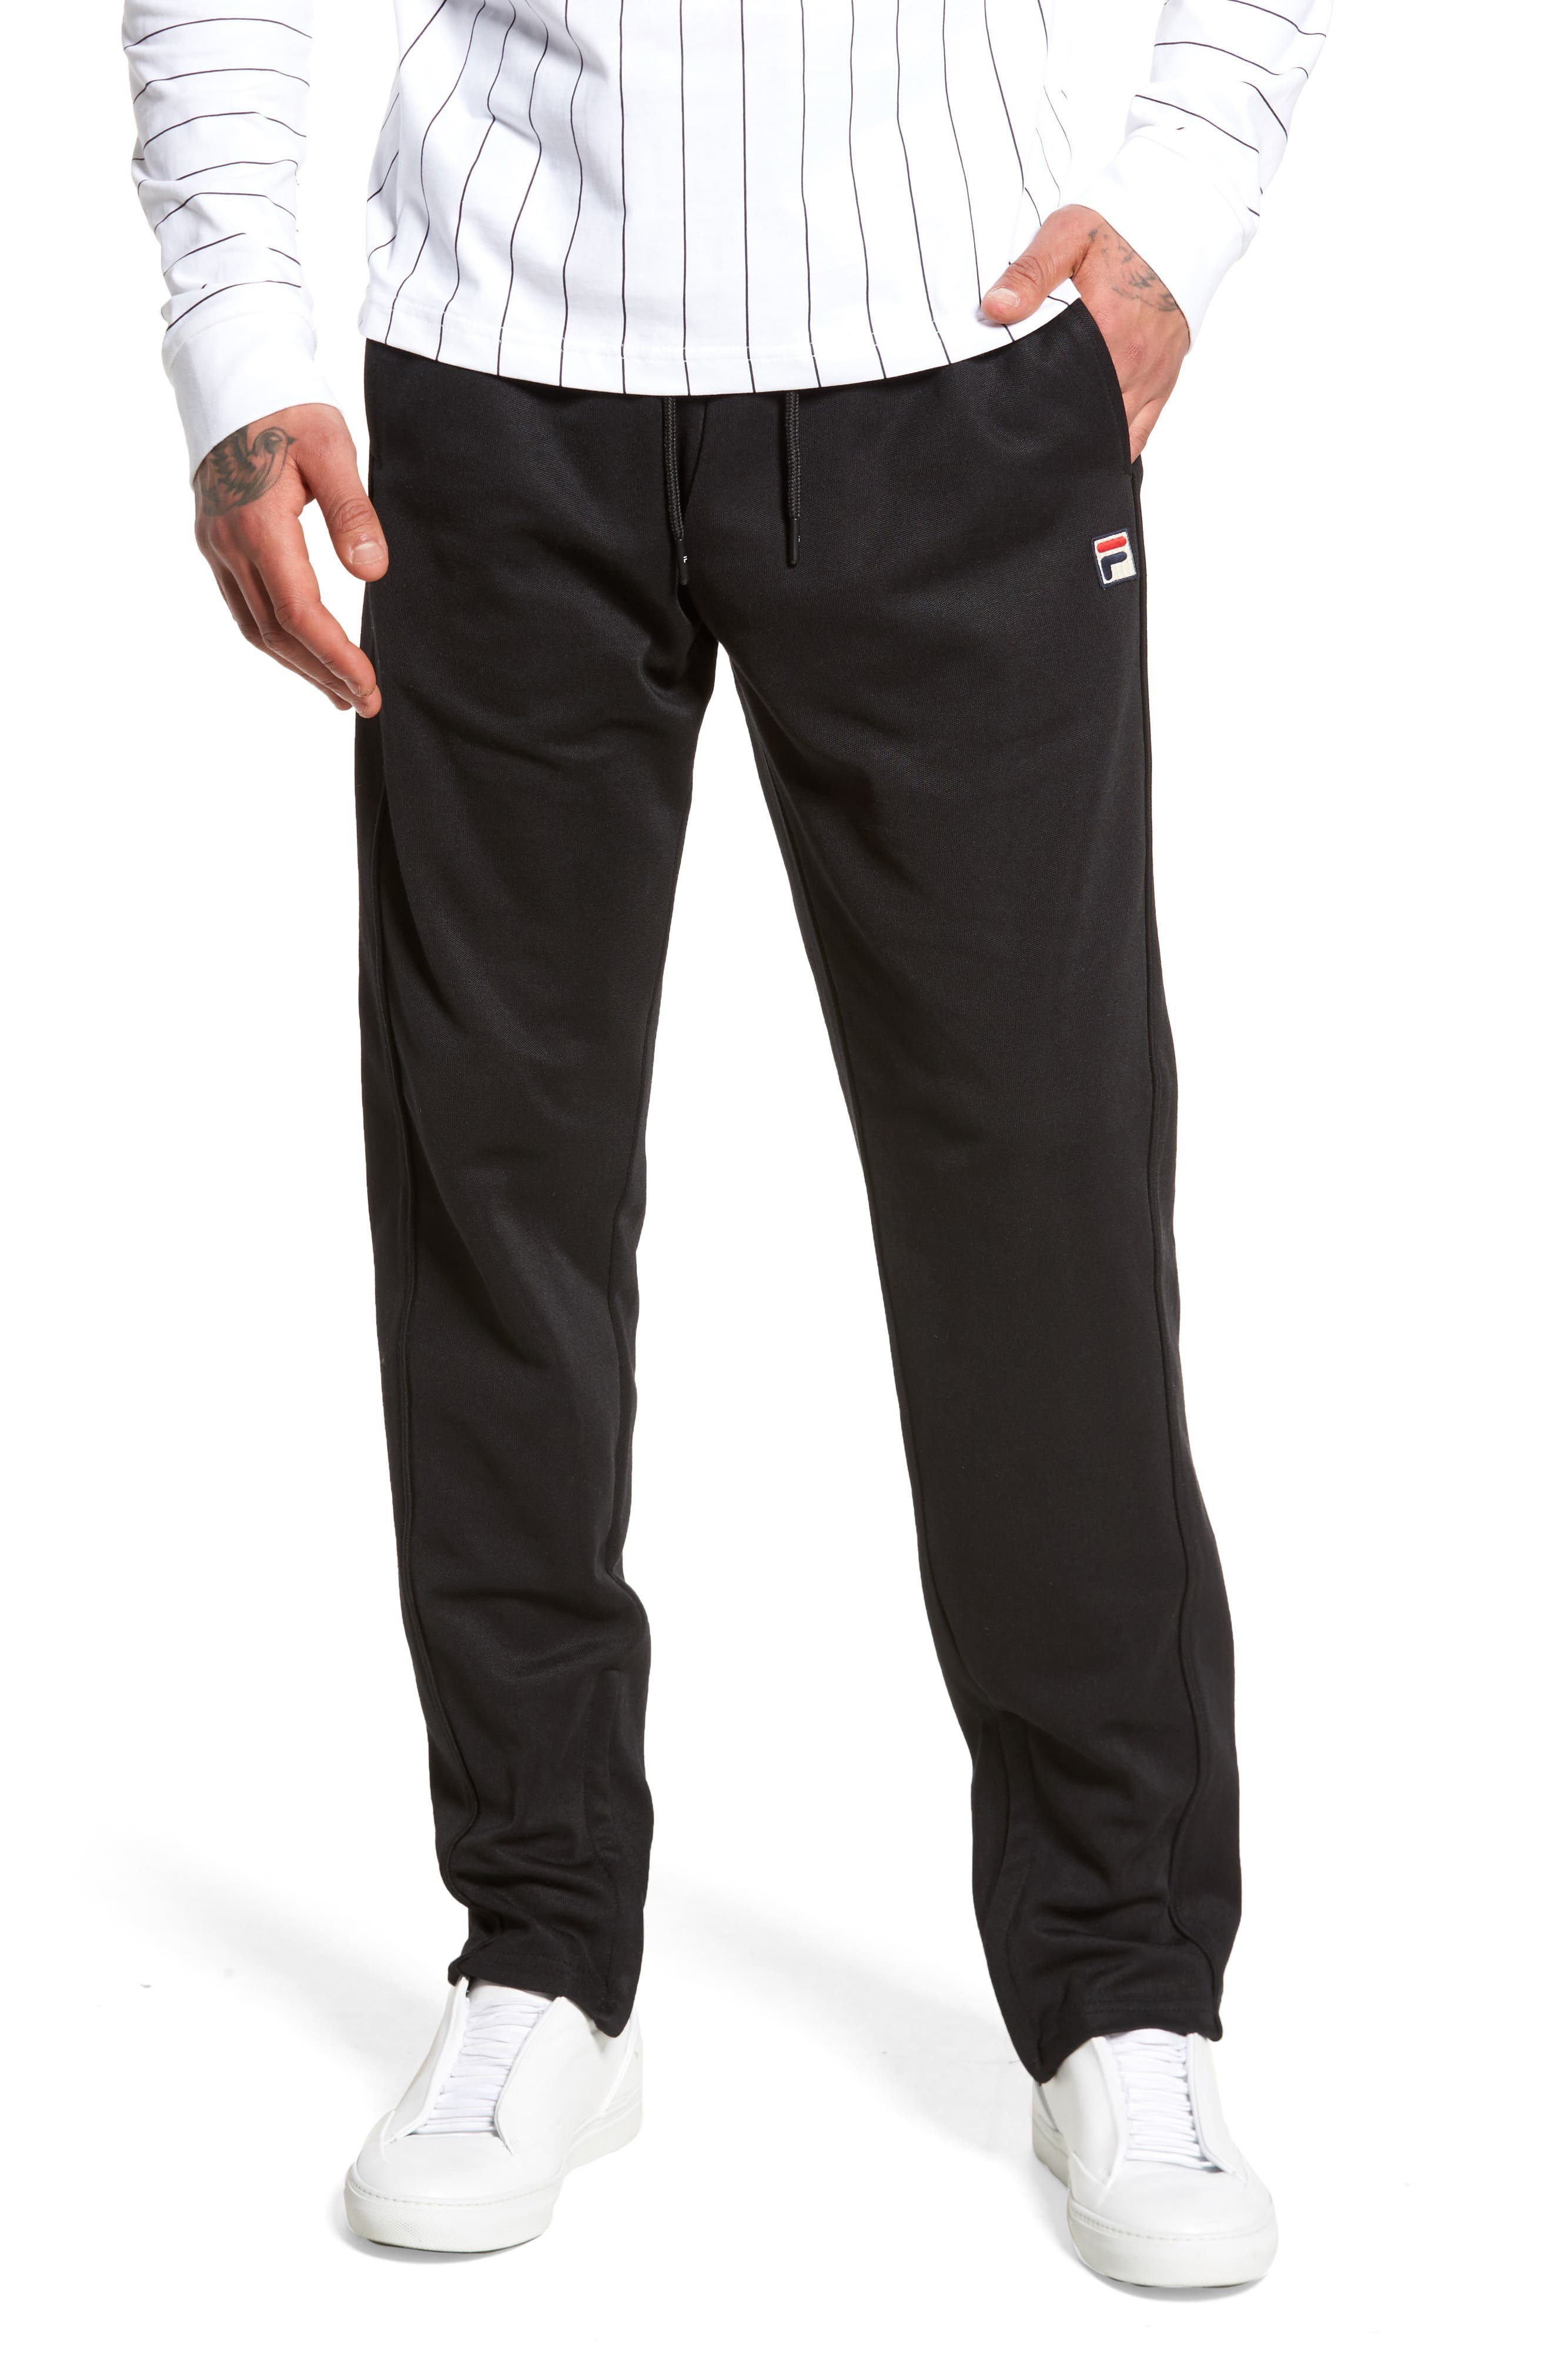 Bianchi Pants,                         Main,                         color, Black